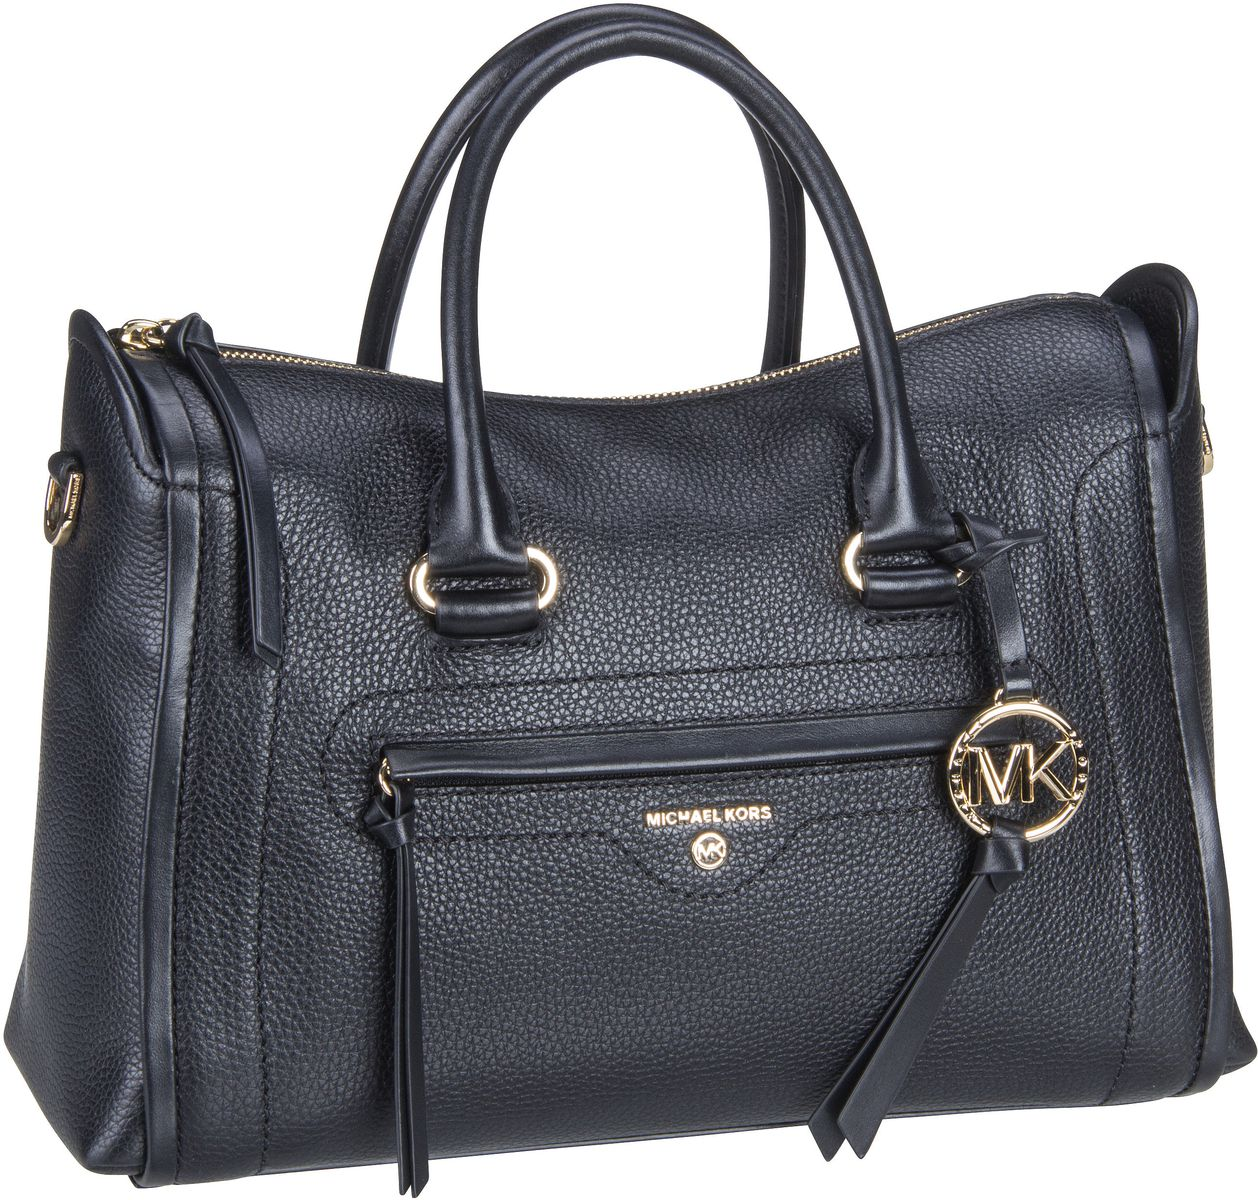 Michael Kors Handtasche Carine Medium Satchel Black